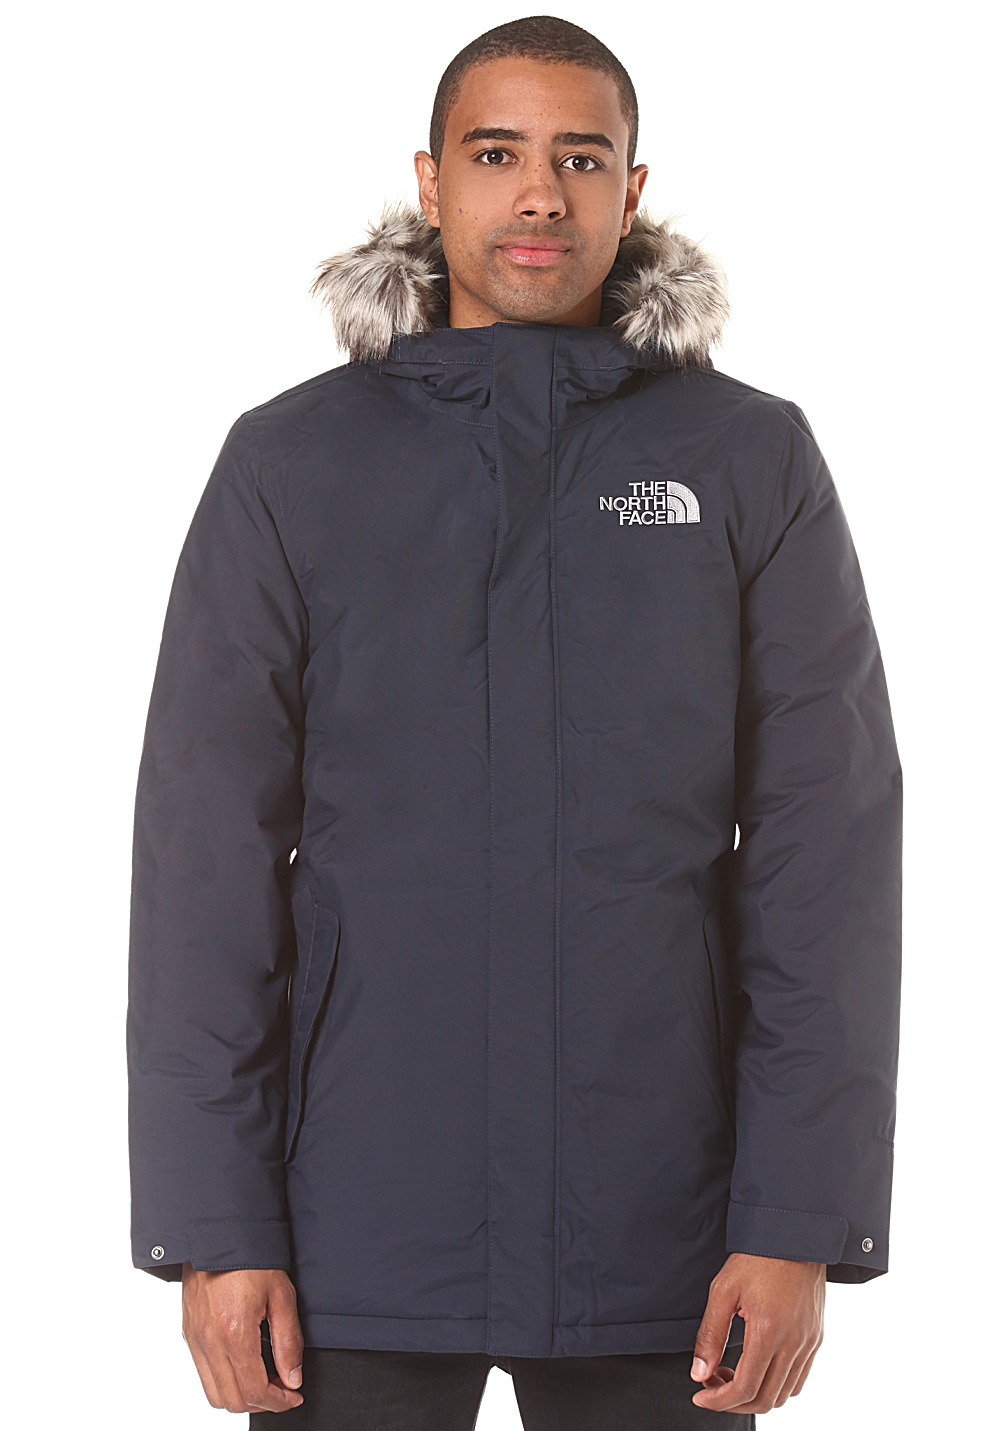 speciale sectie promotie gewoonte THE NORTH FACE Zaneck - Functional Jacket for Men - Blue